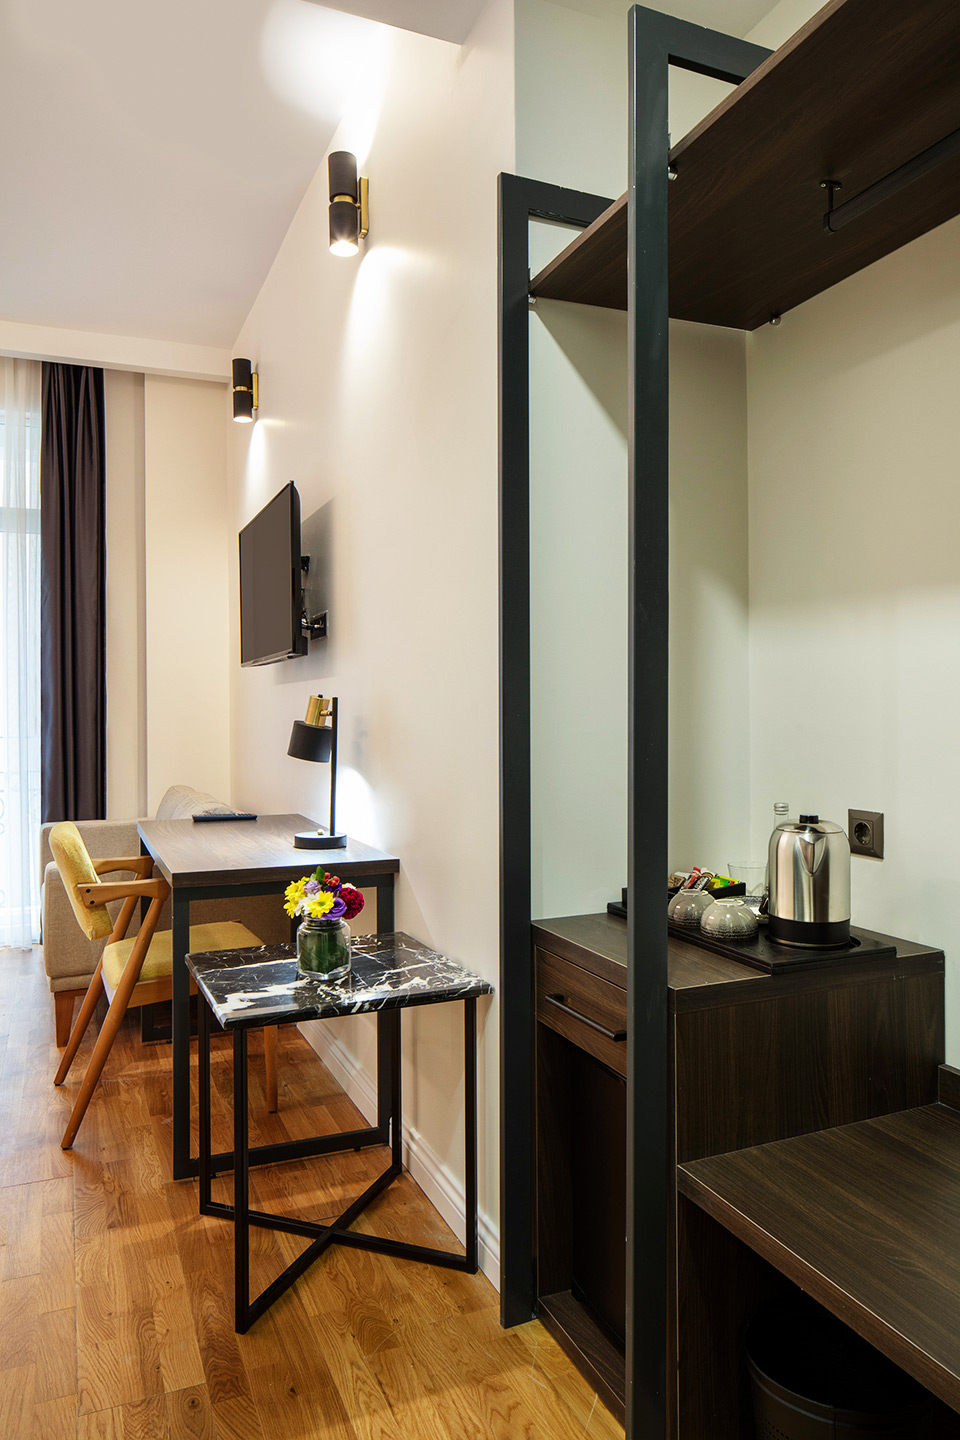 Superiro-guest-room-with-balcony